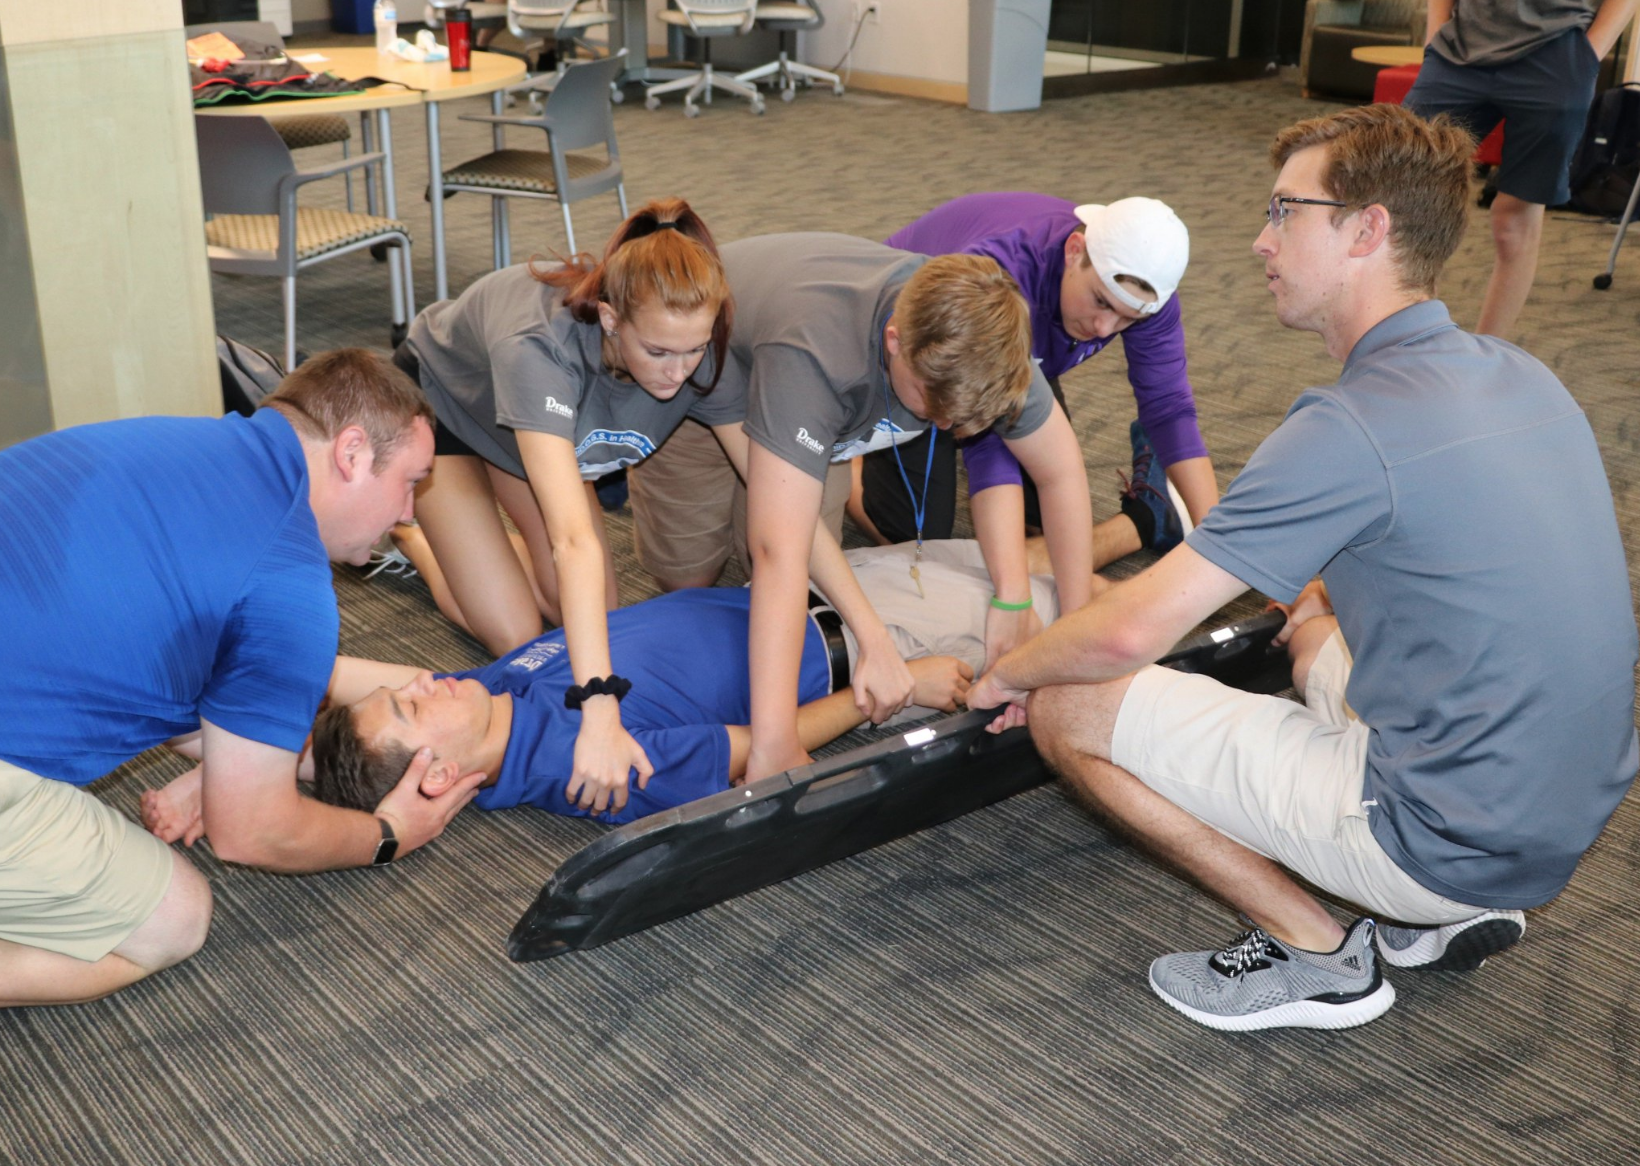 Drake MAT receive education to help prevent, diagnose, and treat injuries resulting from participation in sports.